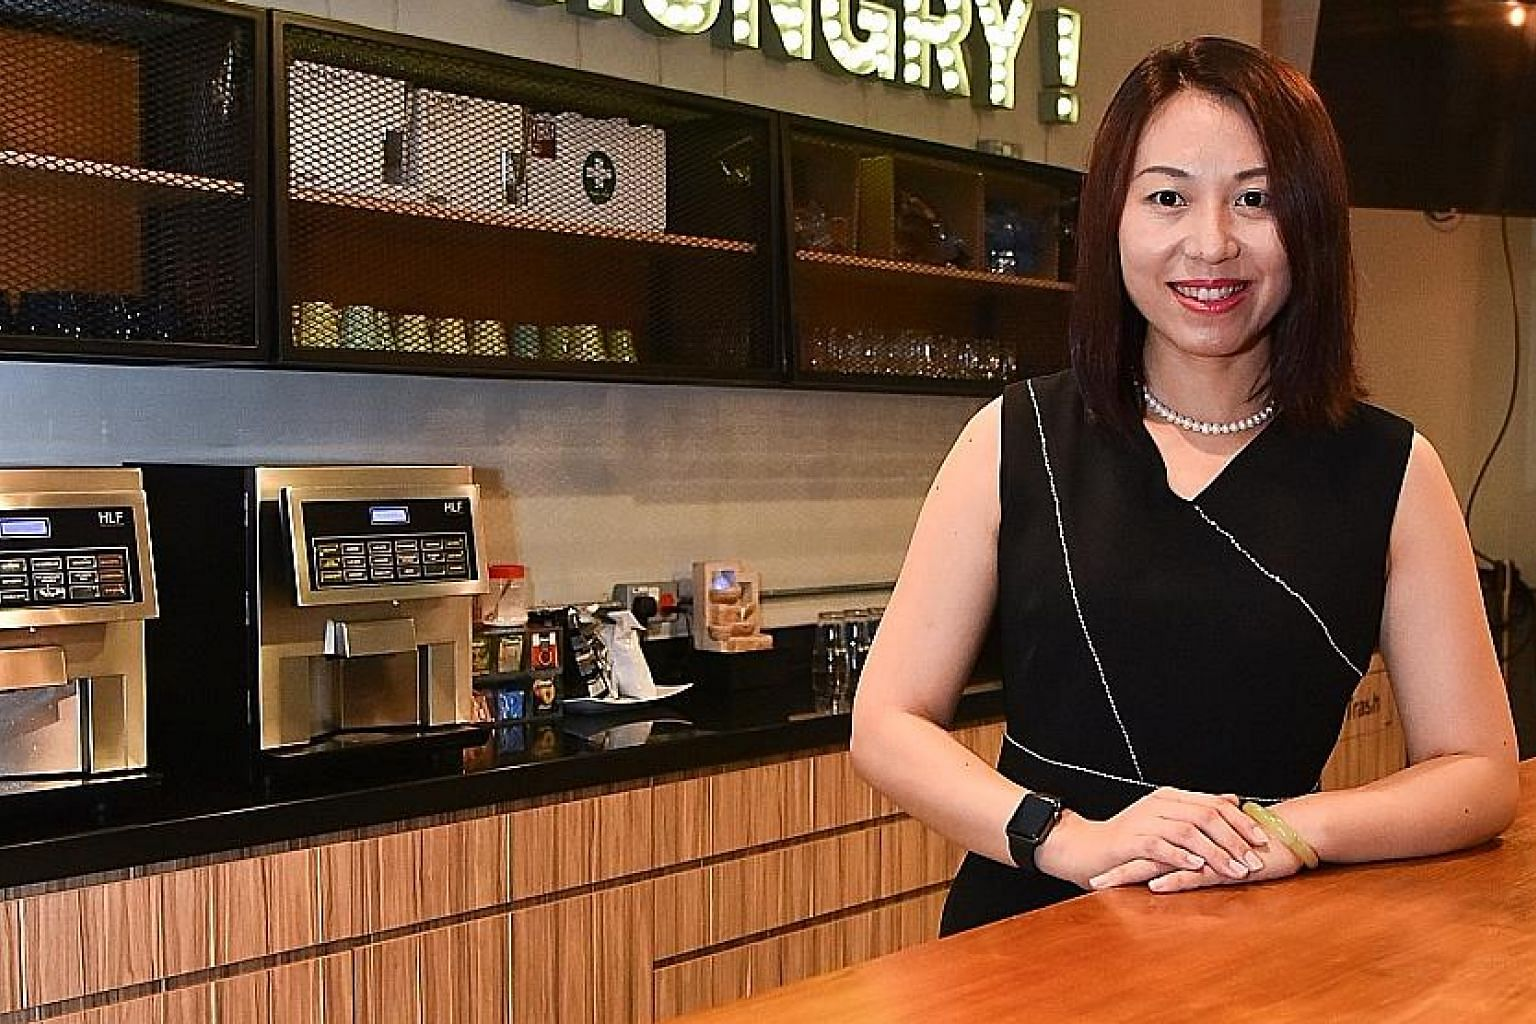 Ms Rachel Chen, head of dollarDEX, says her biggest dream as a 17-year-old girl was to earn enough money to buy nice clothes. She has exceeded that dream, counting properties, unit trusts, exchange-traded funds, stocks and fixed deposits in her inves